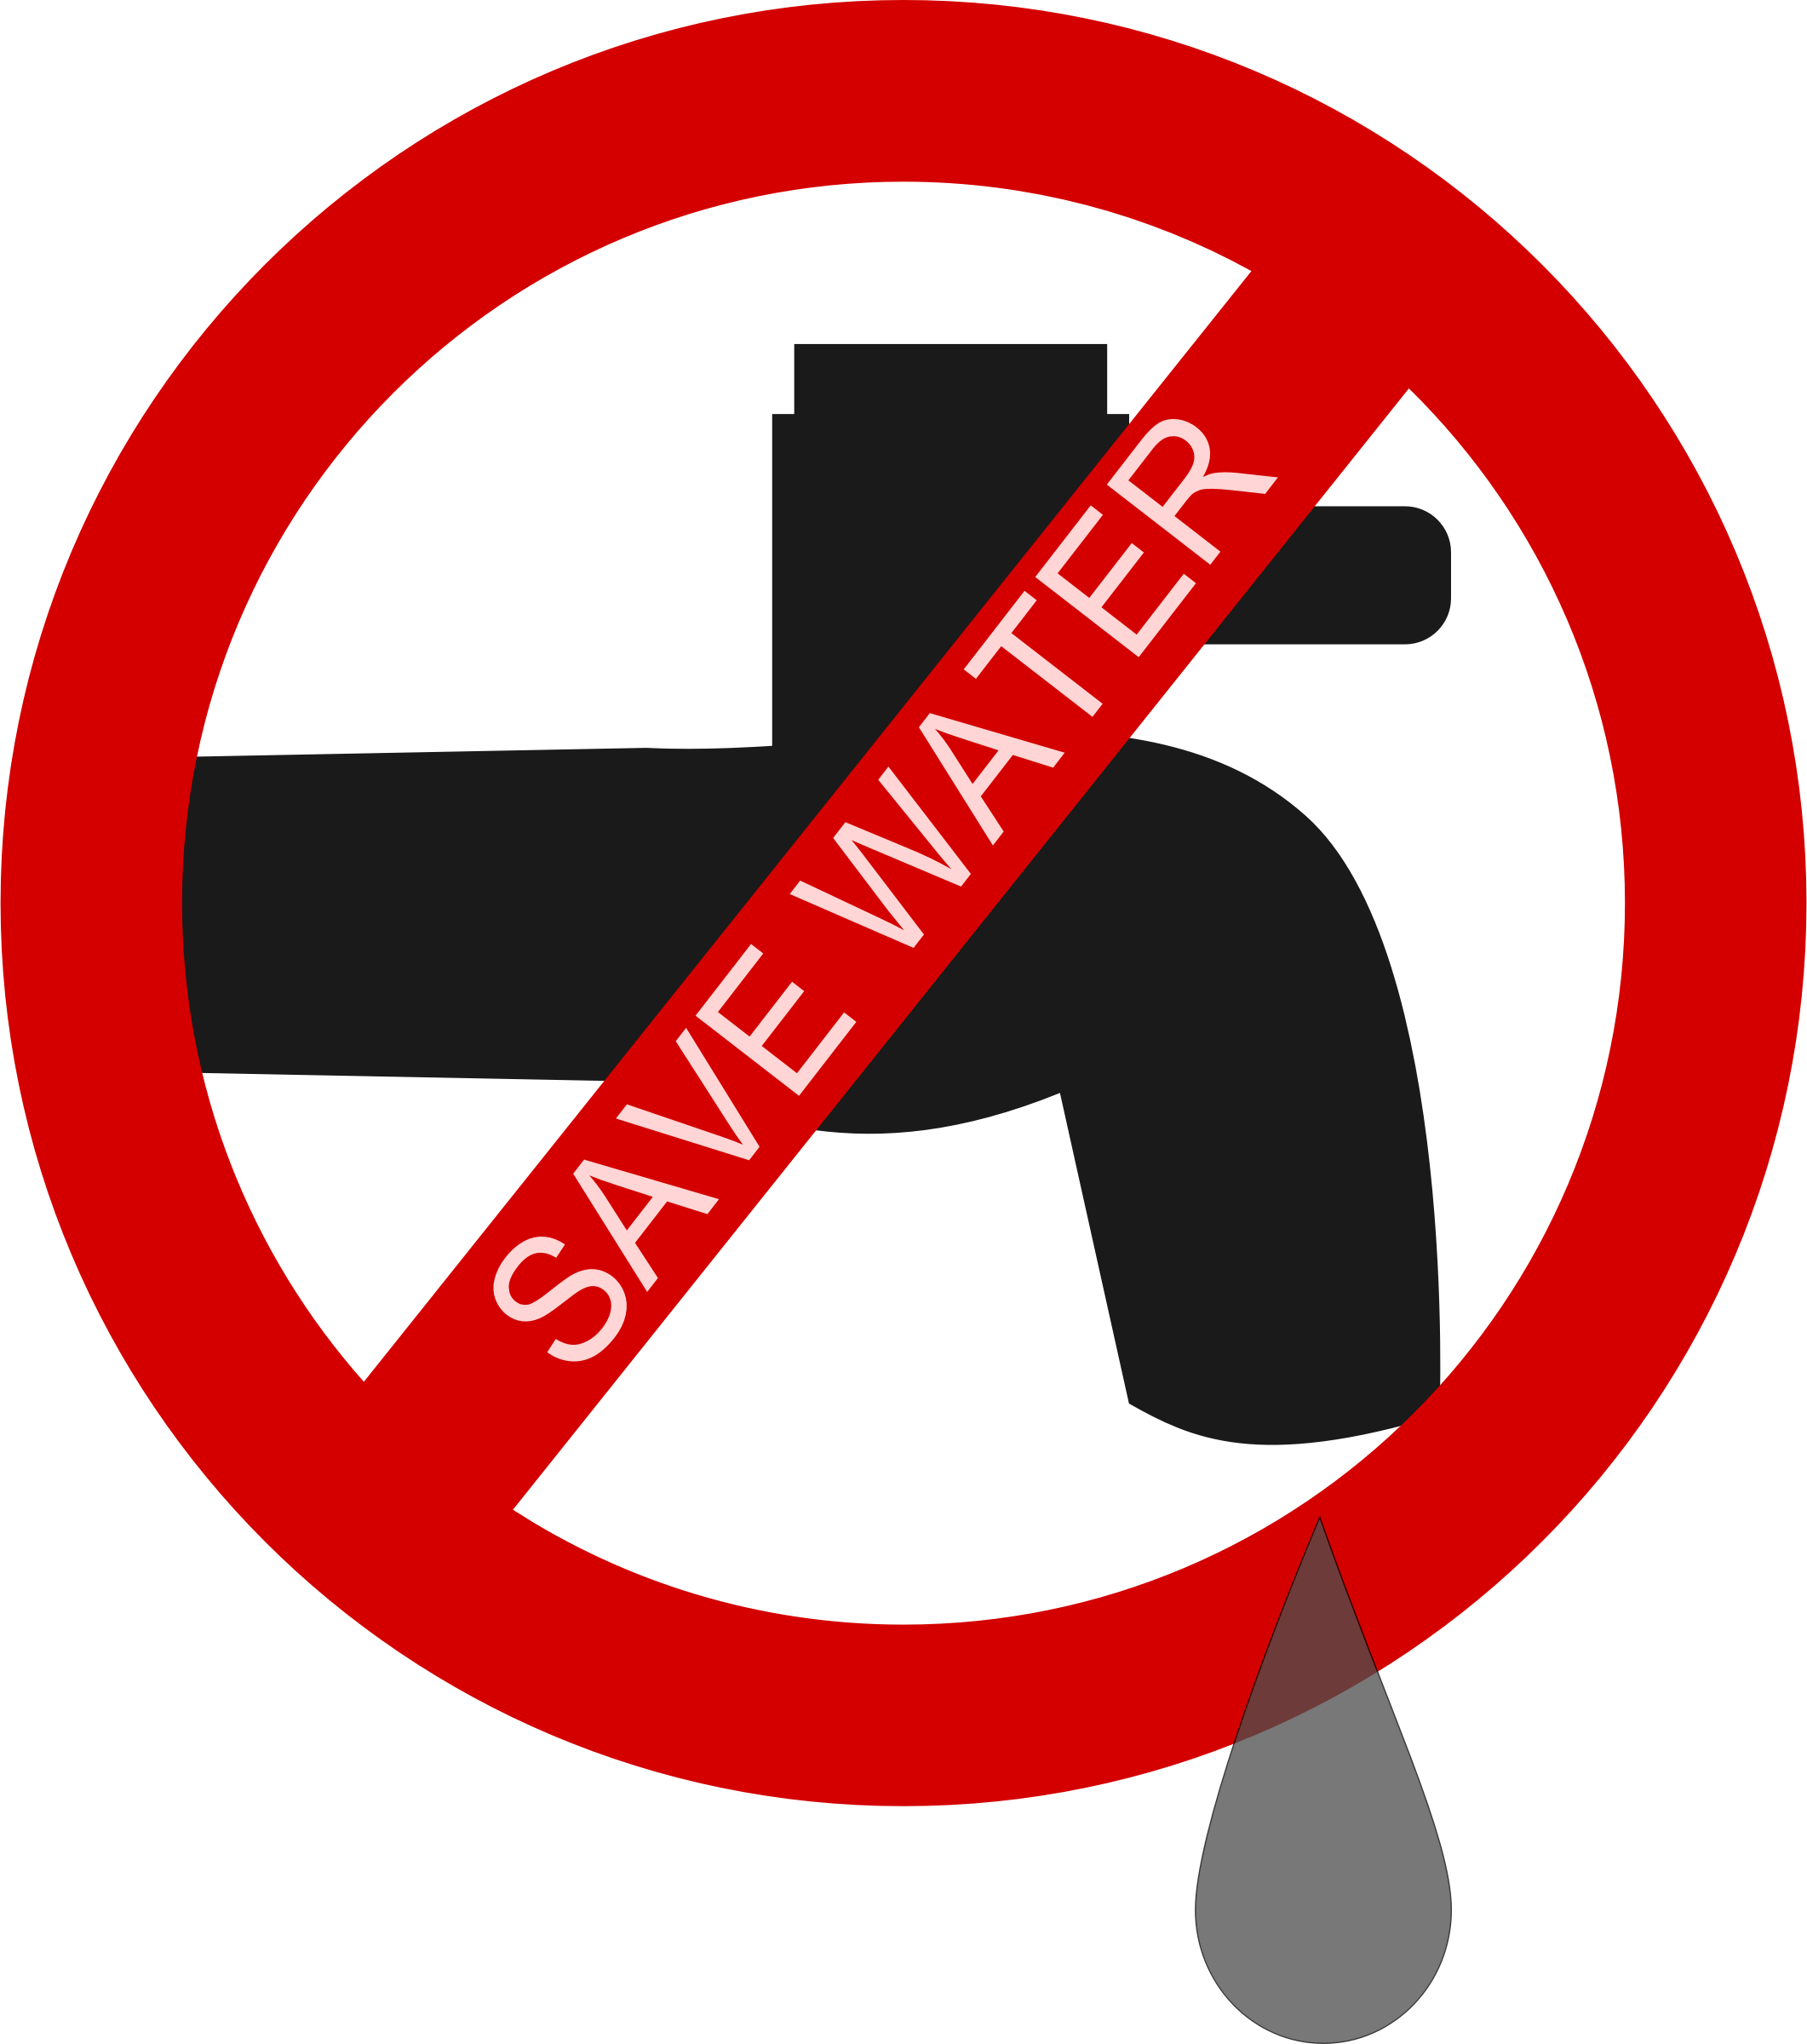 Reduce water clipart.